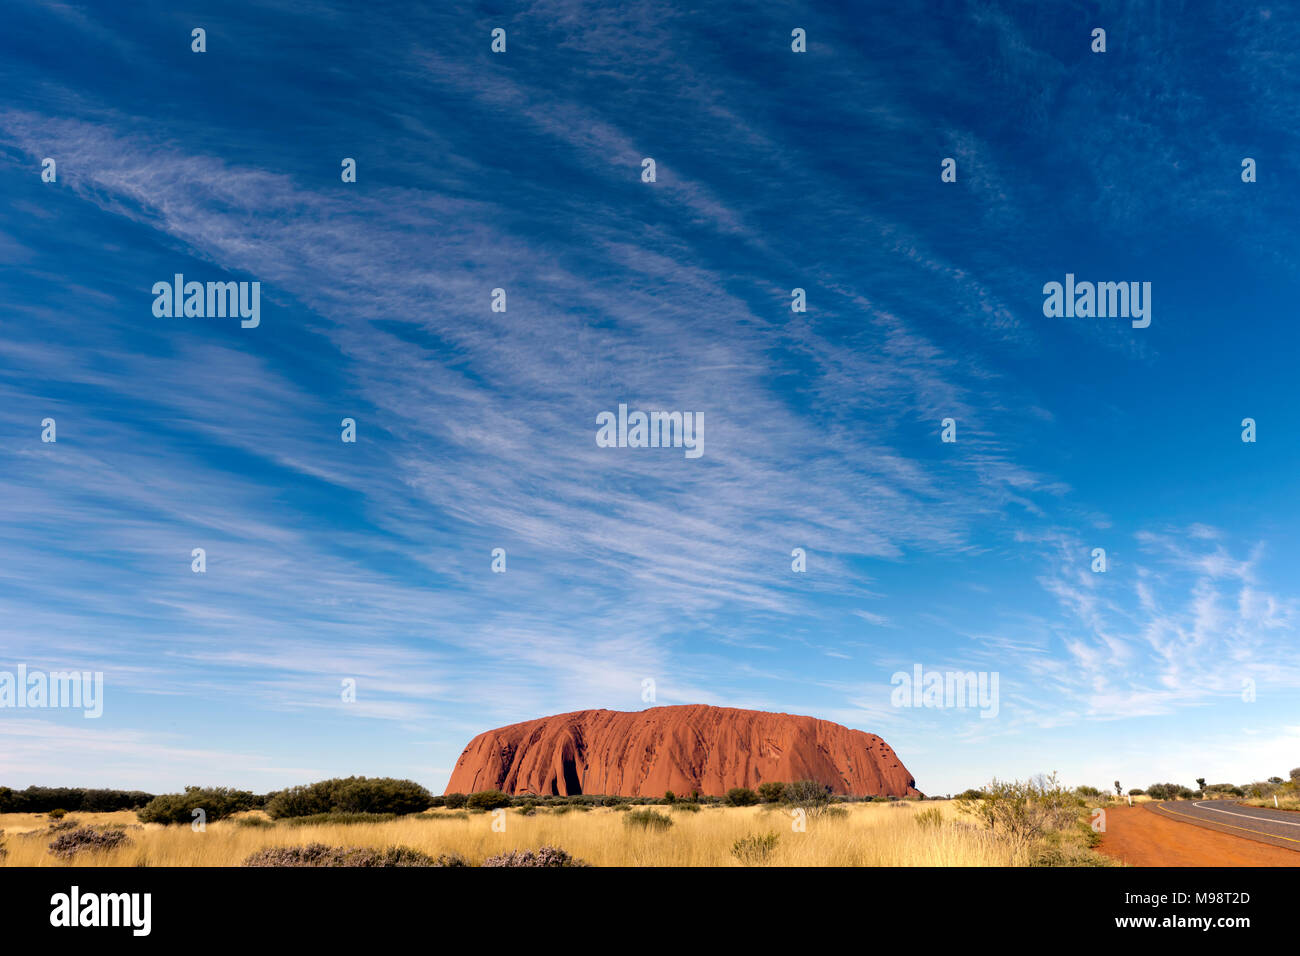 road to ayers rock stock photos road to ayers rock stock images alamy. Black Bedroom Furniture Sets. Home Design Ideas